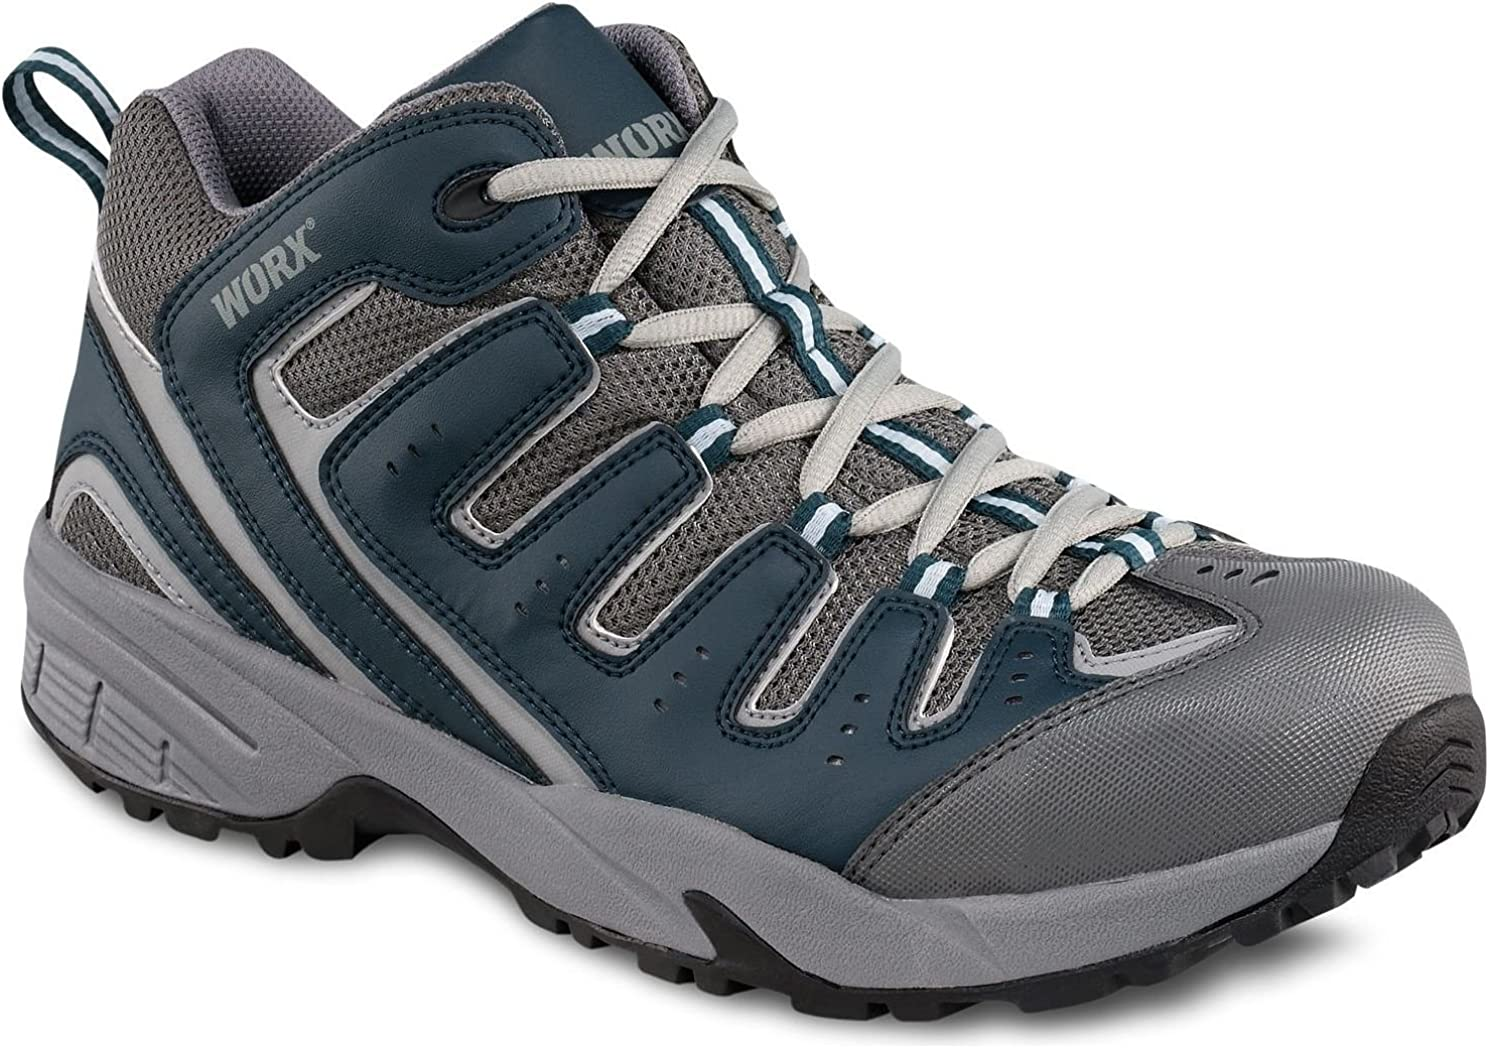 Red Wing Worx Shoes Men's 5009 Athletic